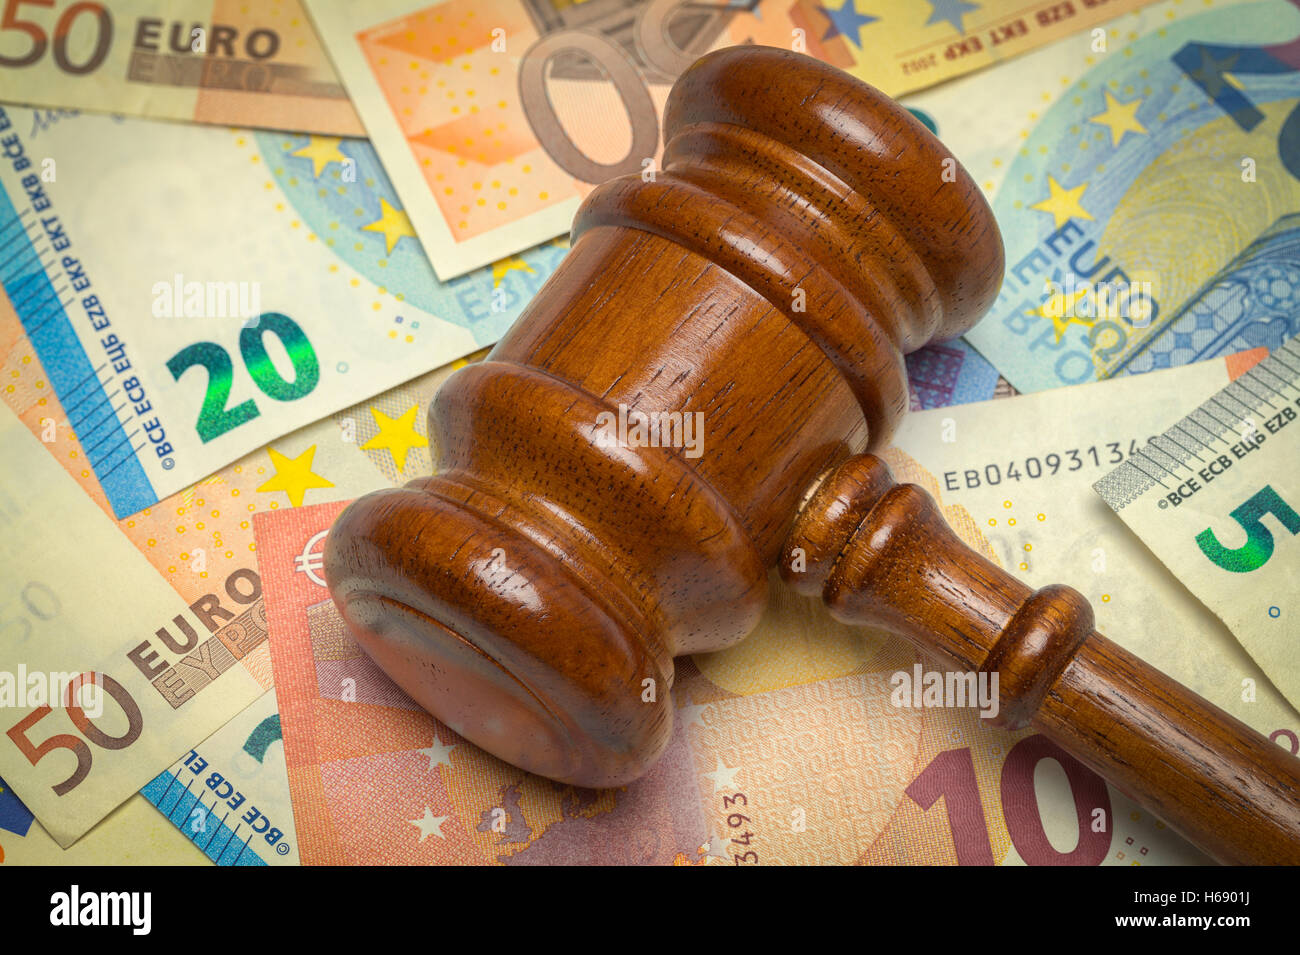 Pile of Euros and Wooden Law Gavel. - Stock Image